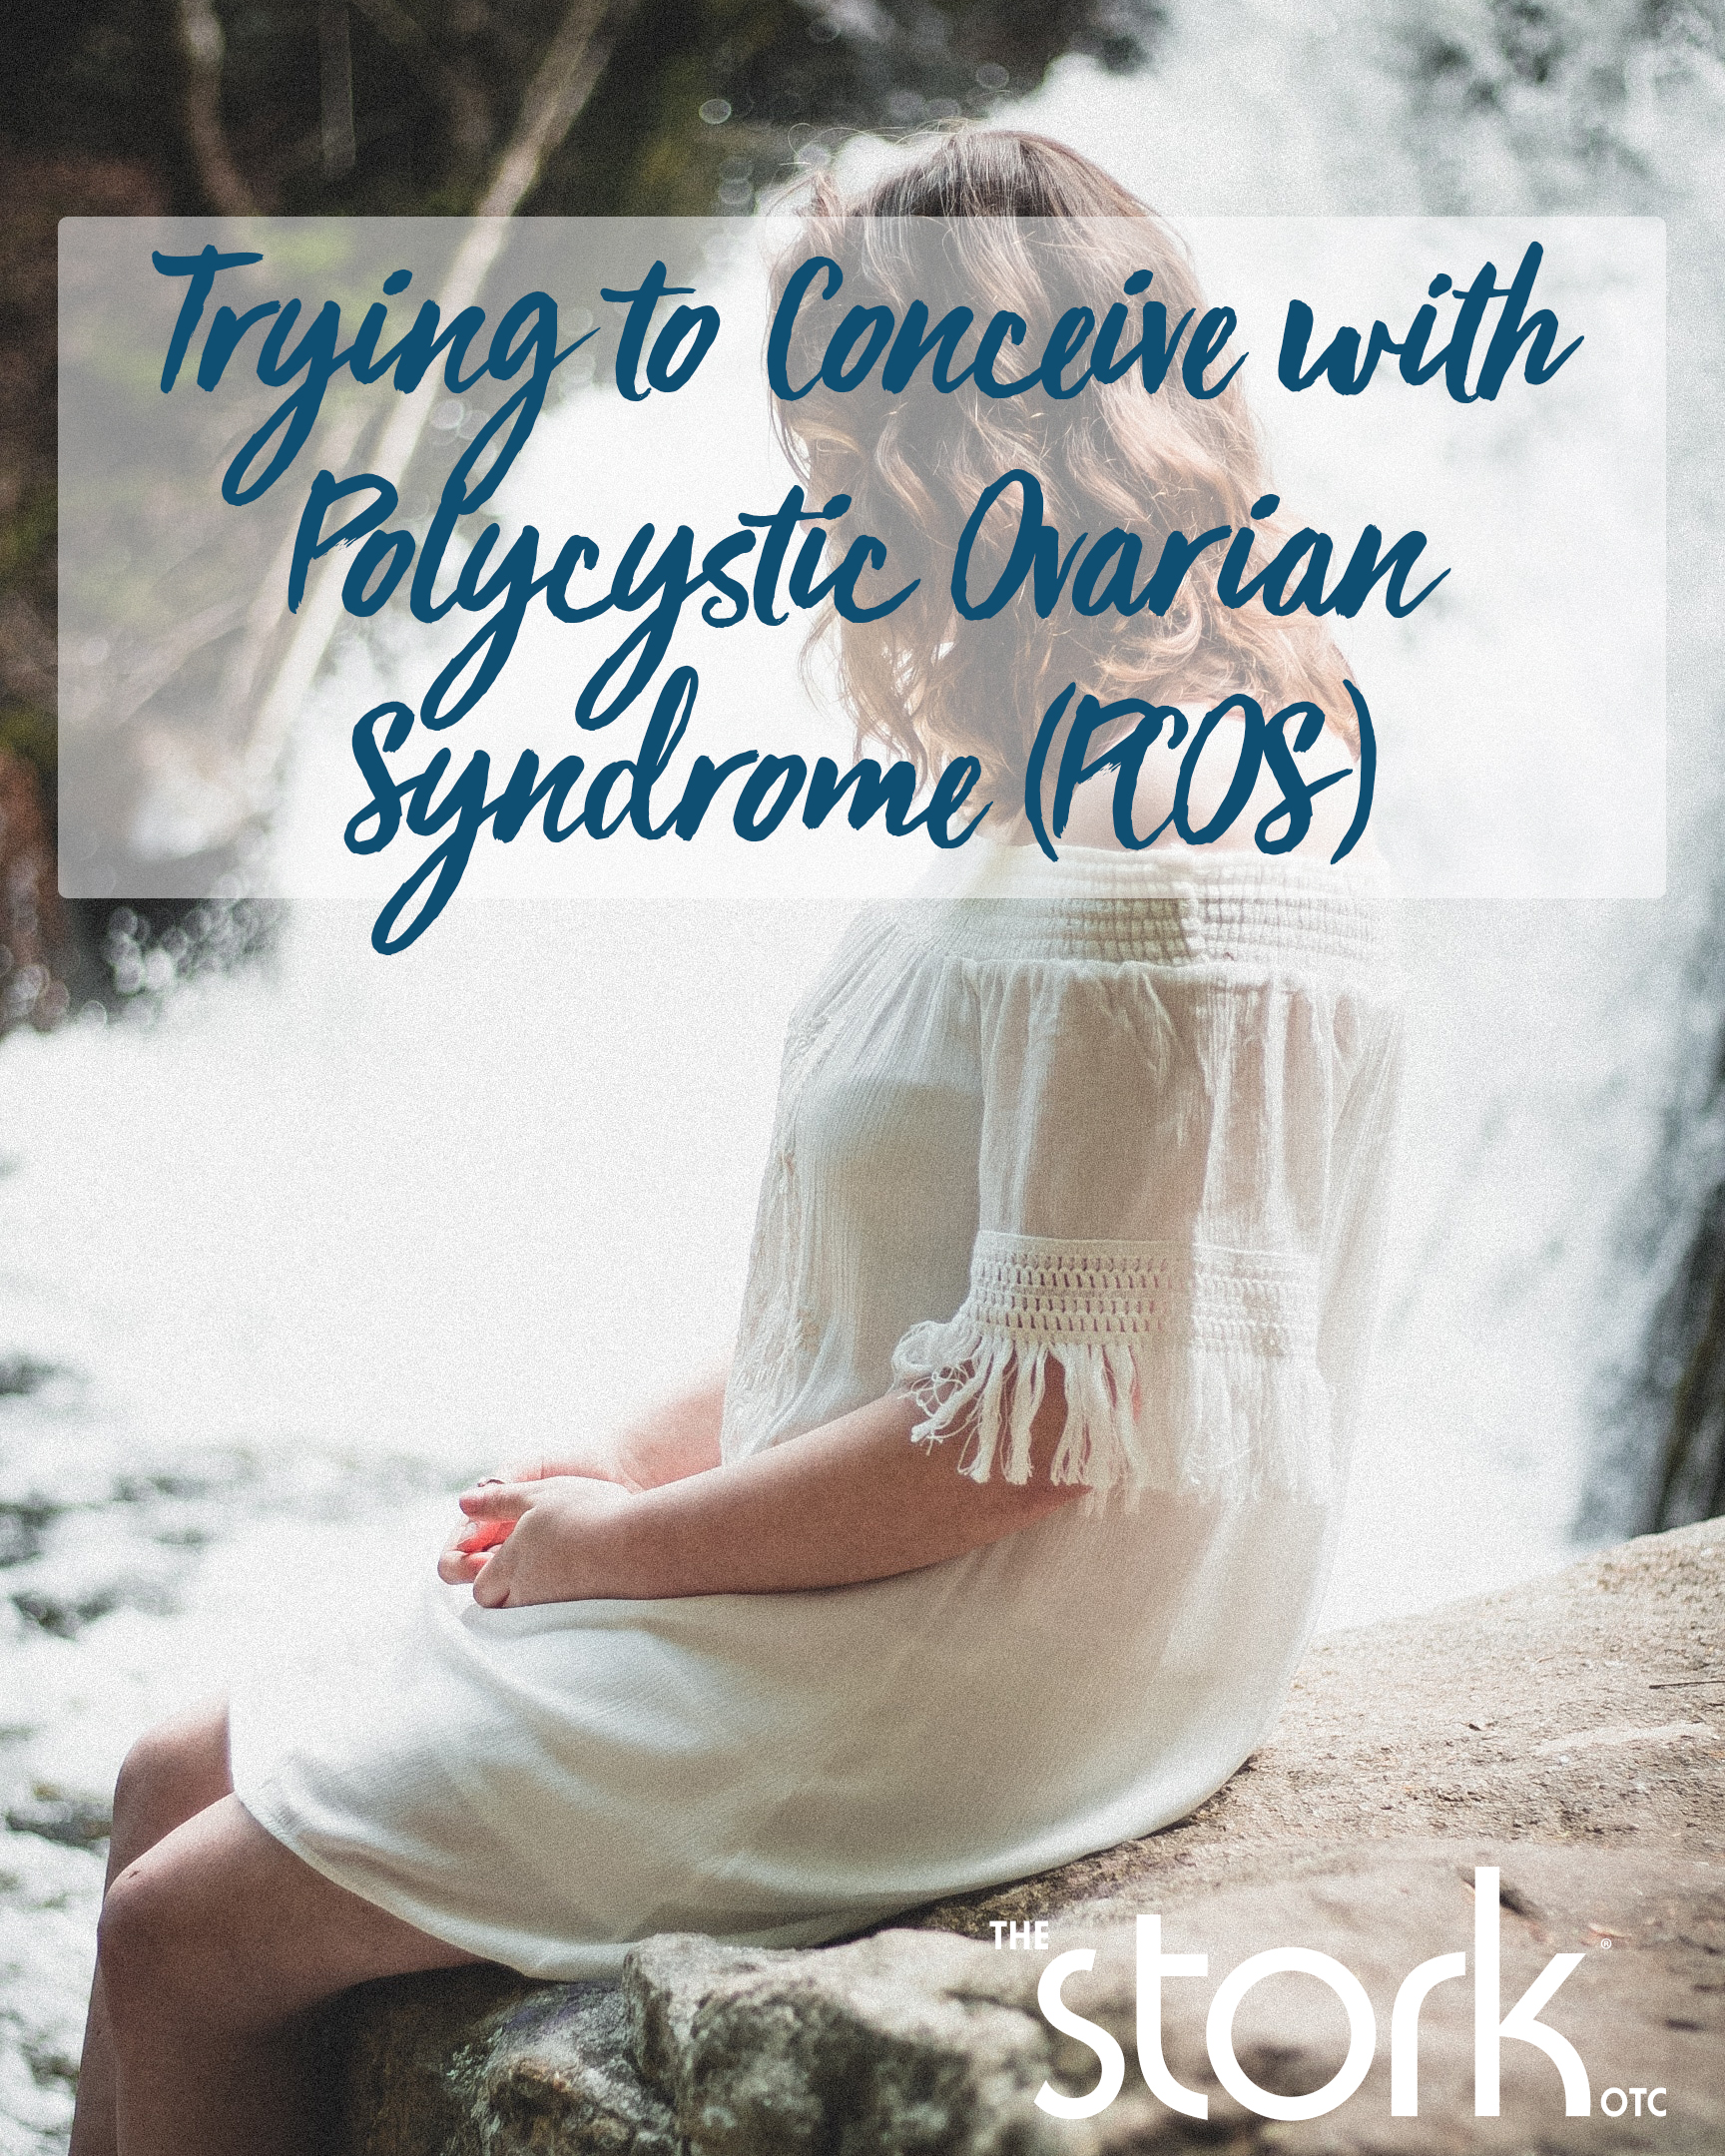 Trying to Get Pregnant with Polycystic Ovarian Syndrome (PCOS)